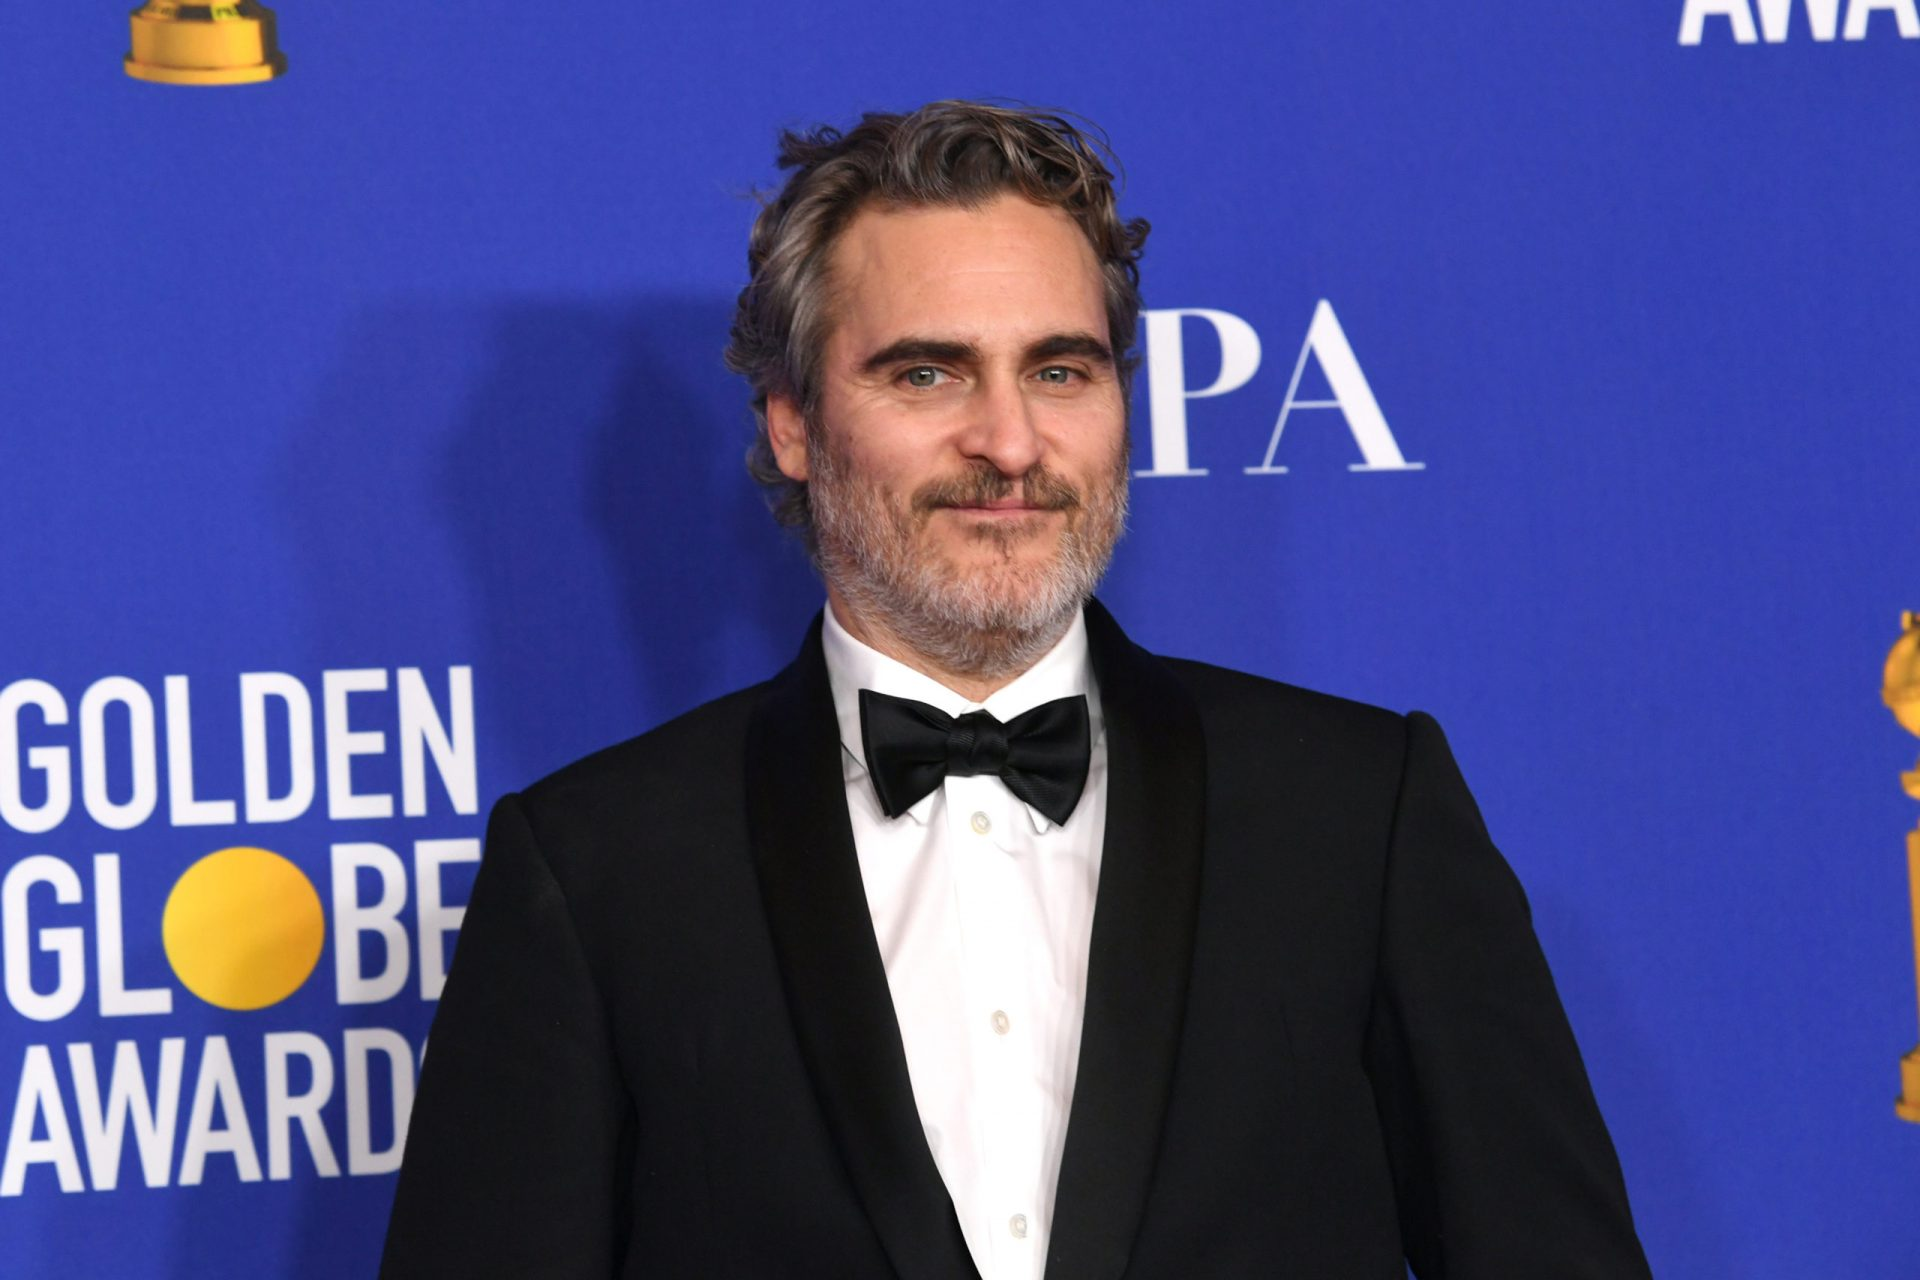 Joaquin Phoenix – 5 Feet 8 Inches